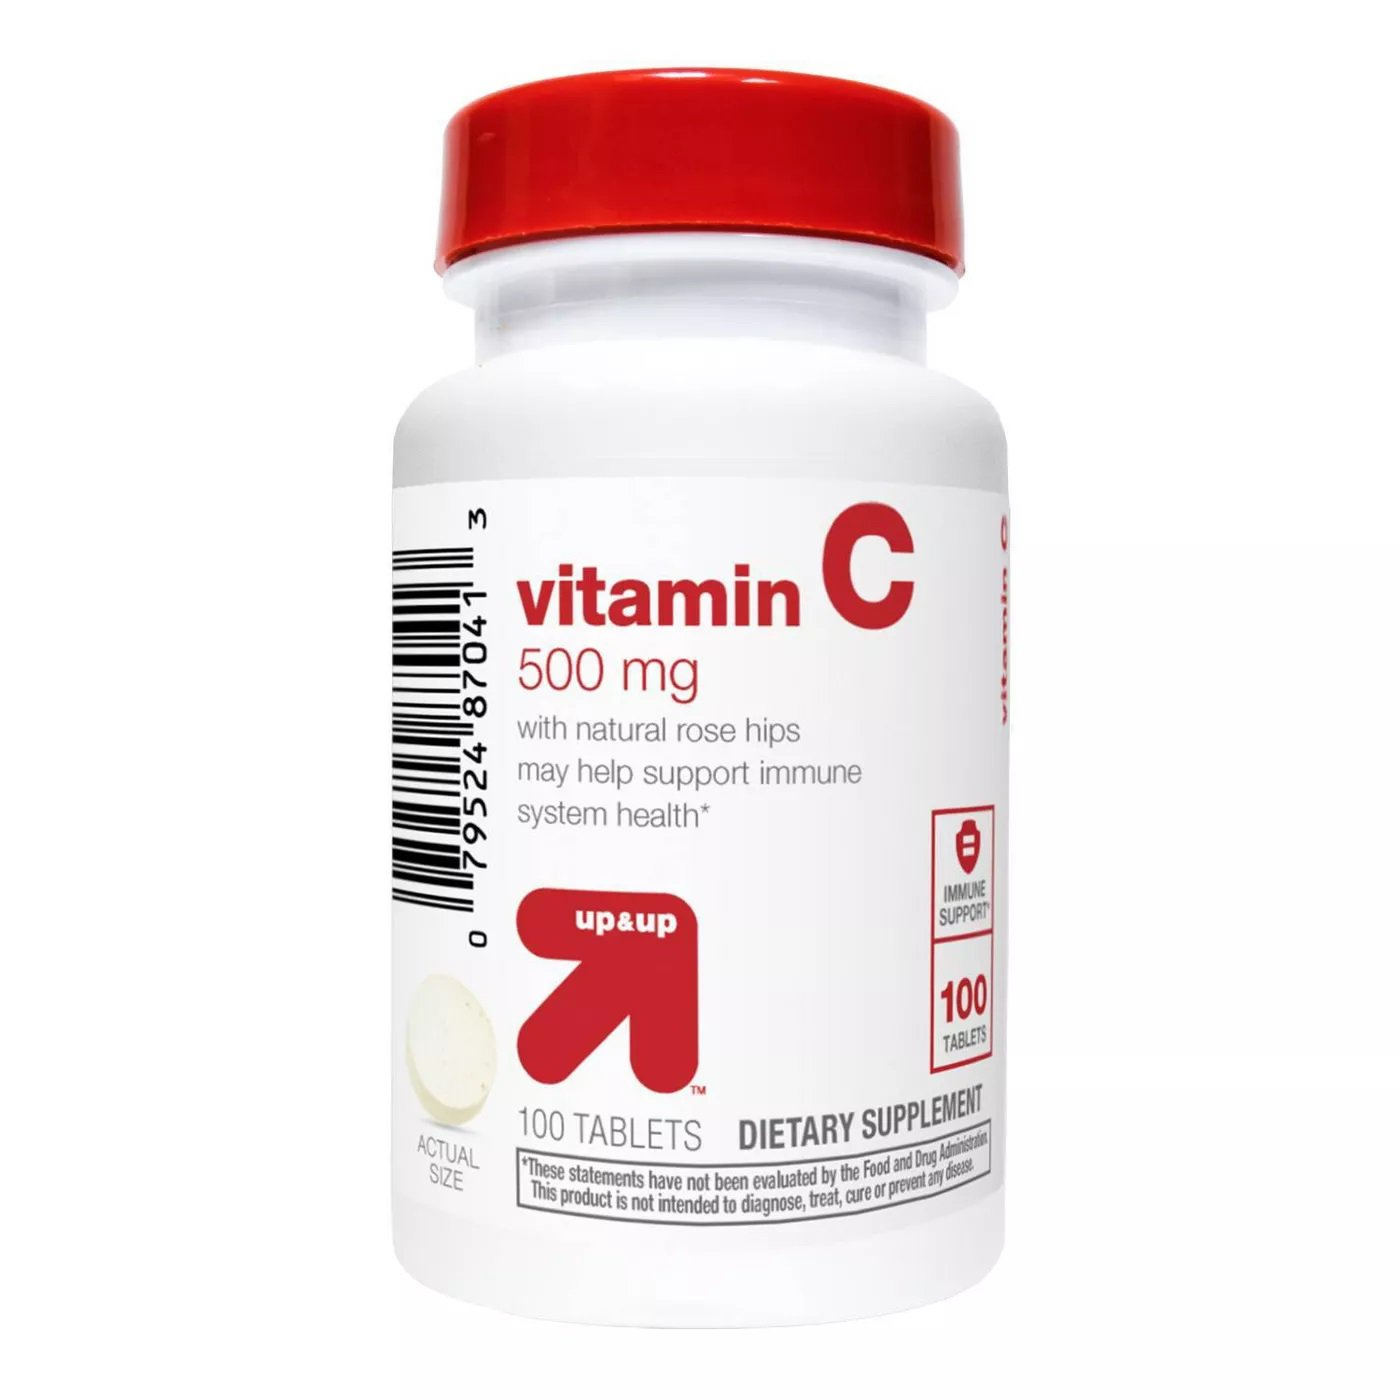 Vitamin C 500 mg with Rose Hips Tablets - 100 Count - up & up